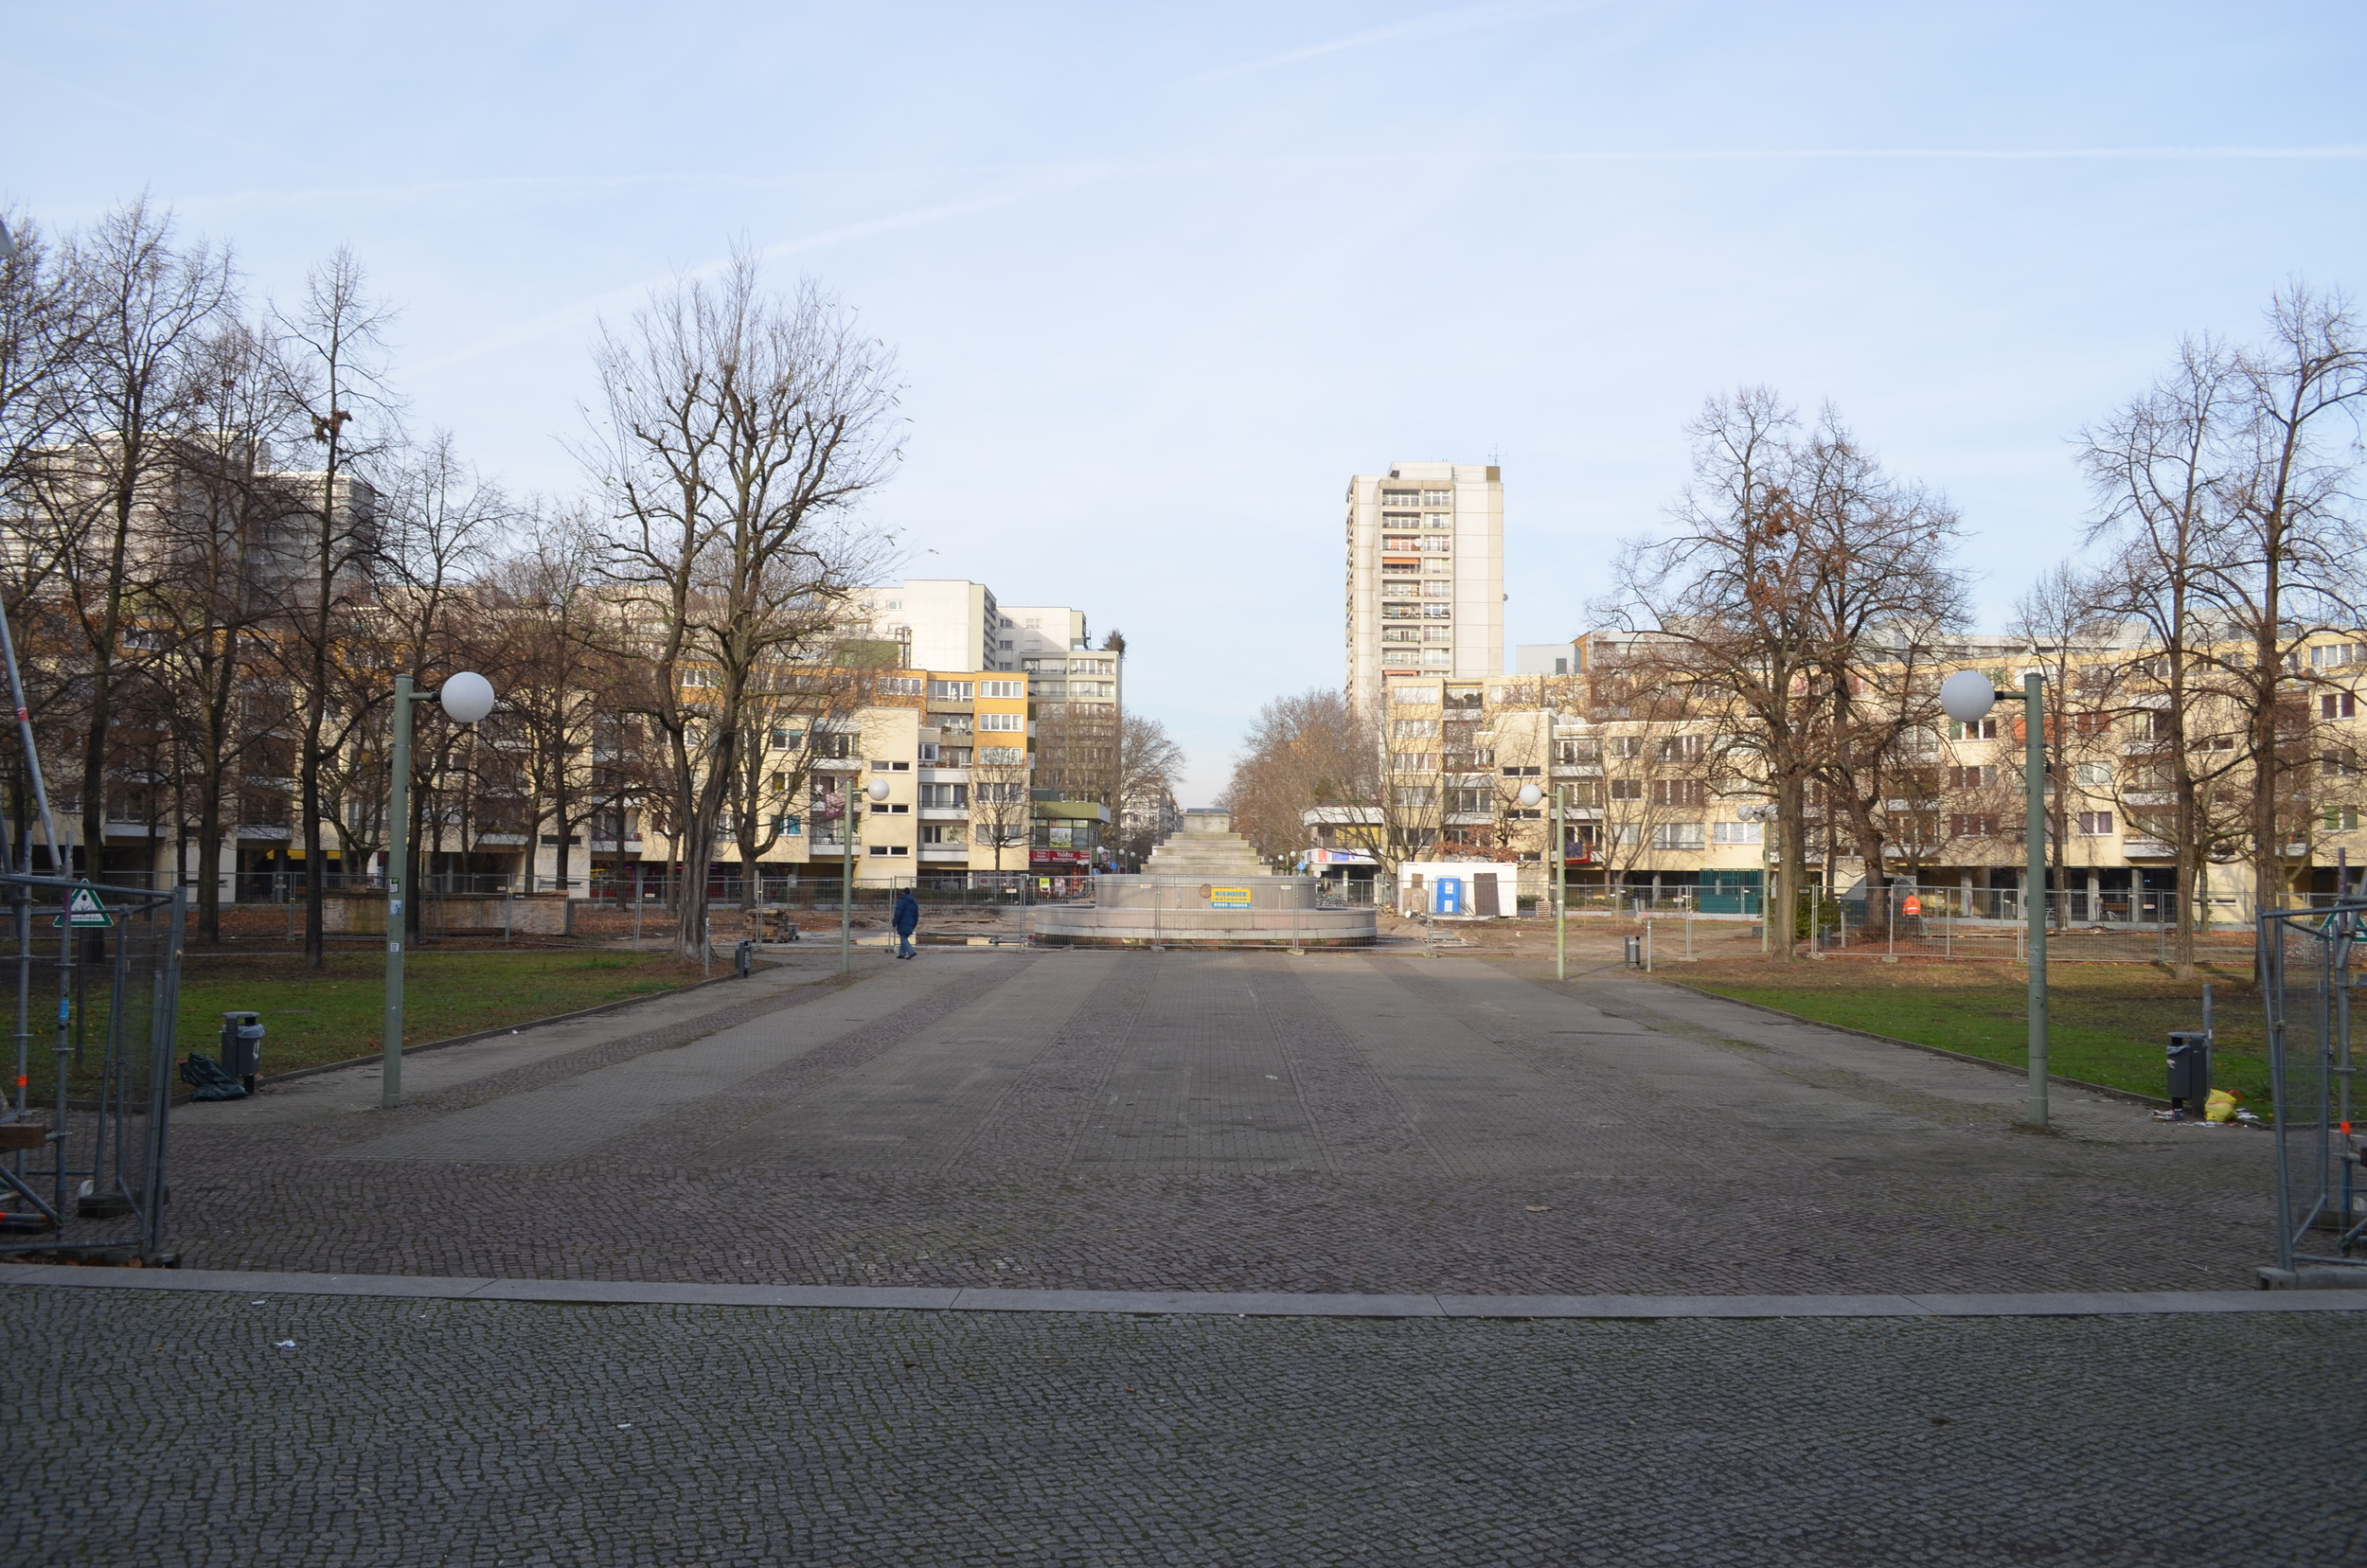 The park inside the ring of buildings. The memorial in the center is currently being refurbished.